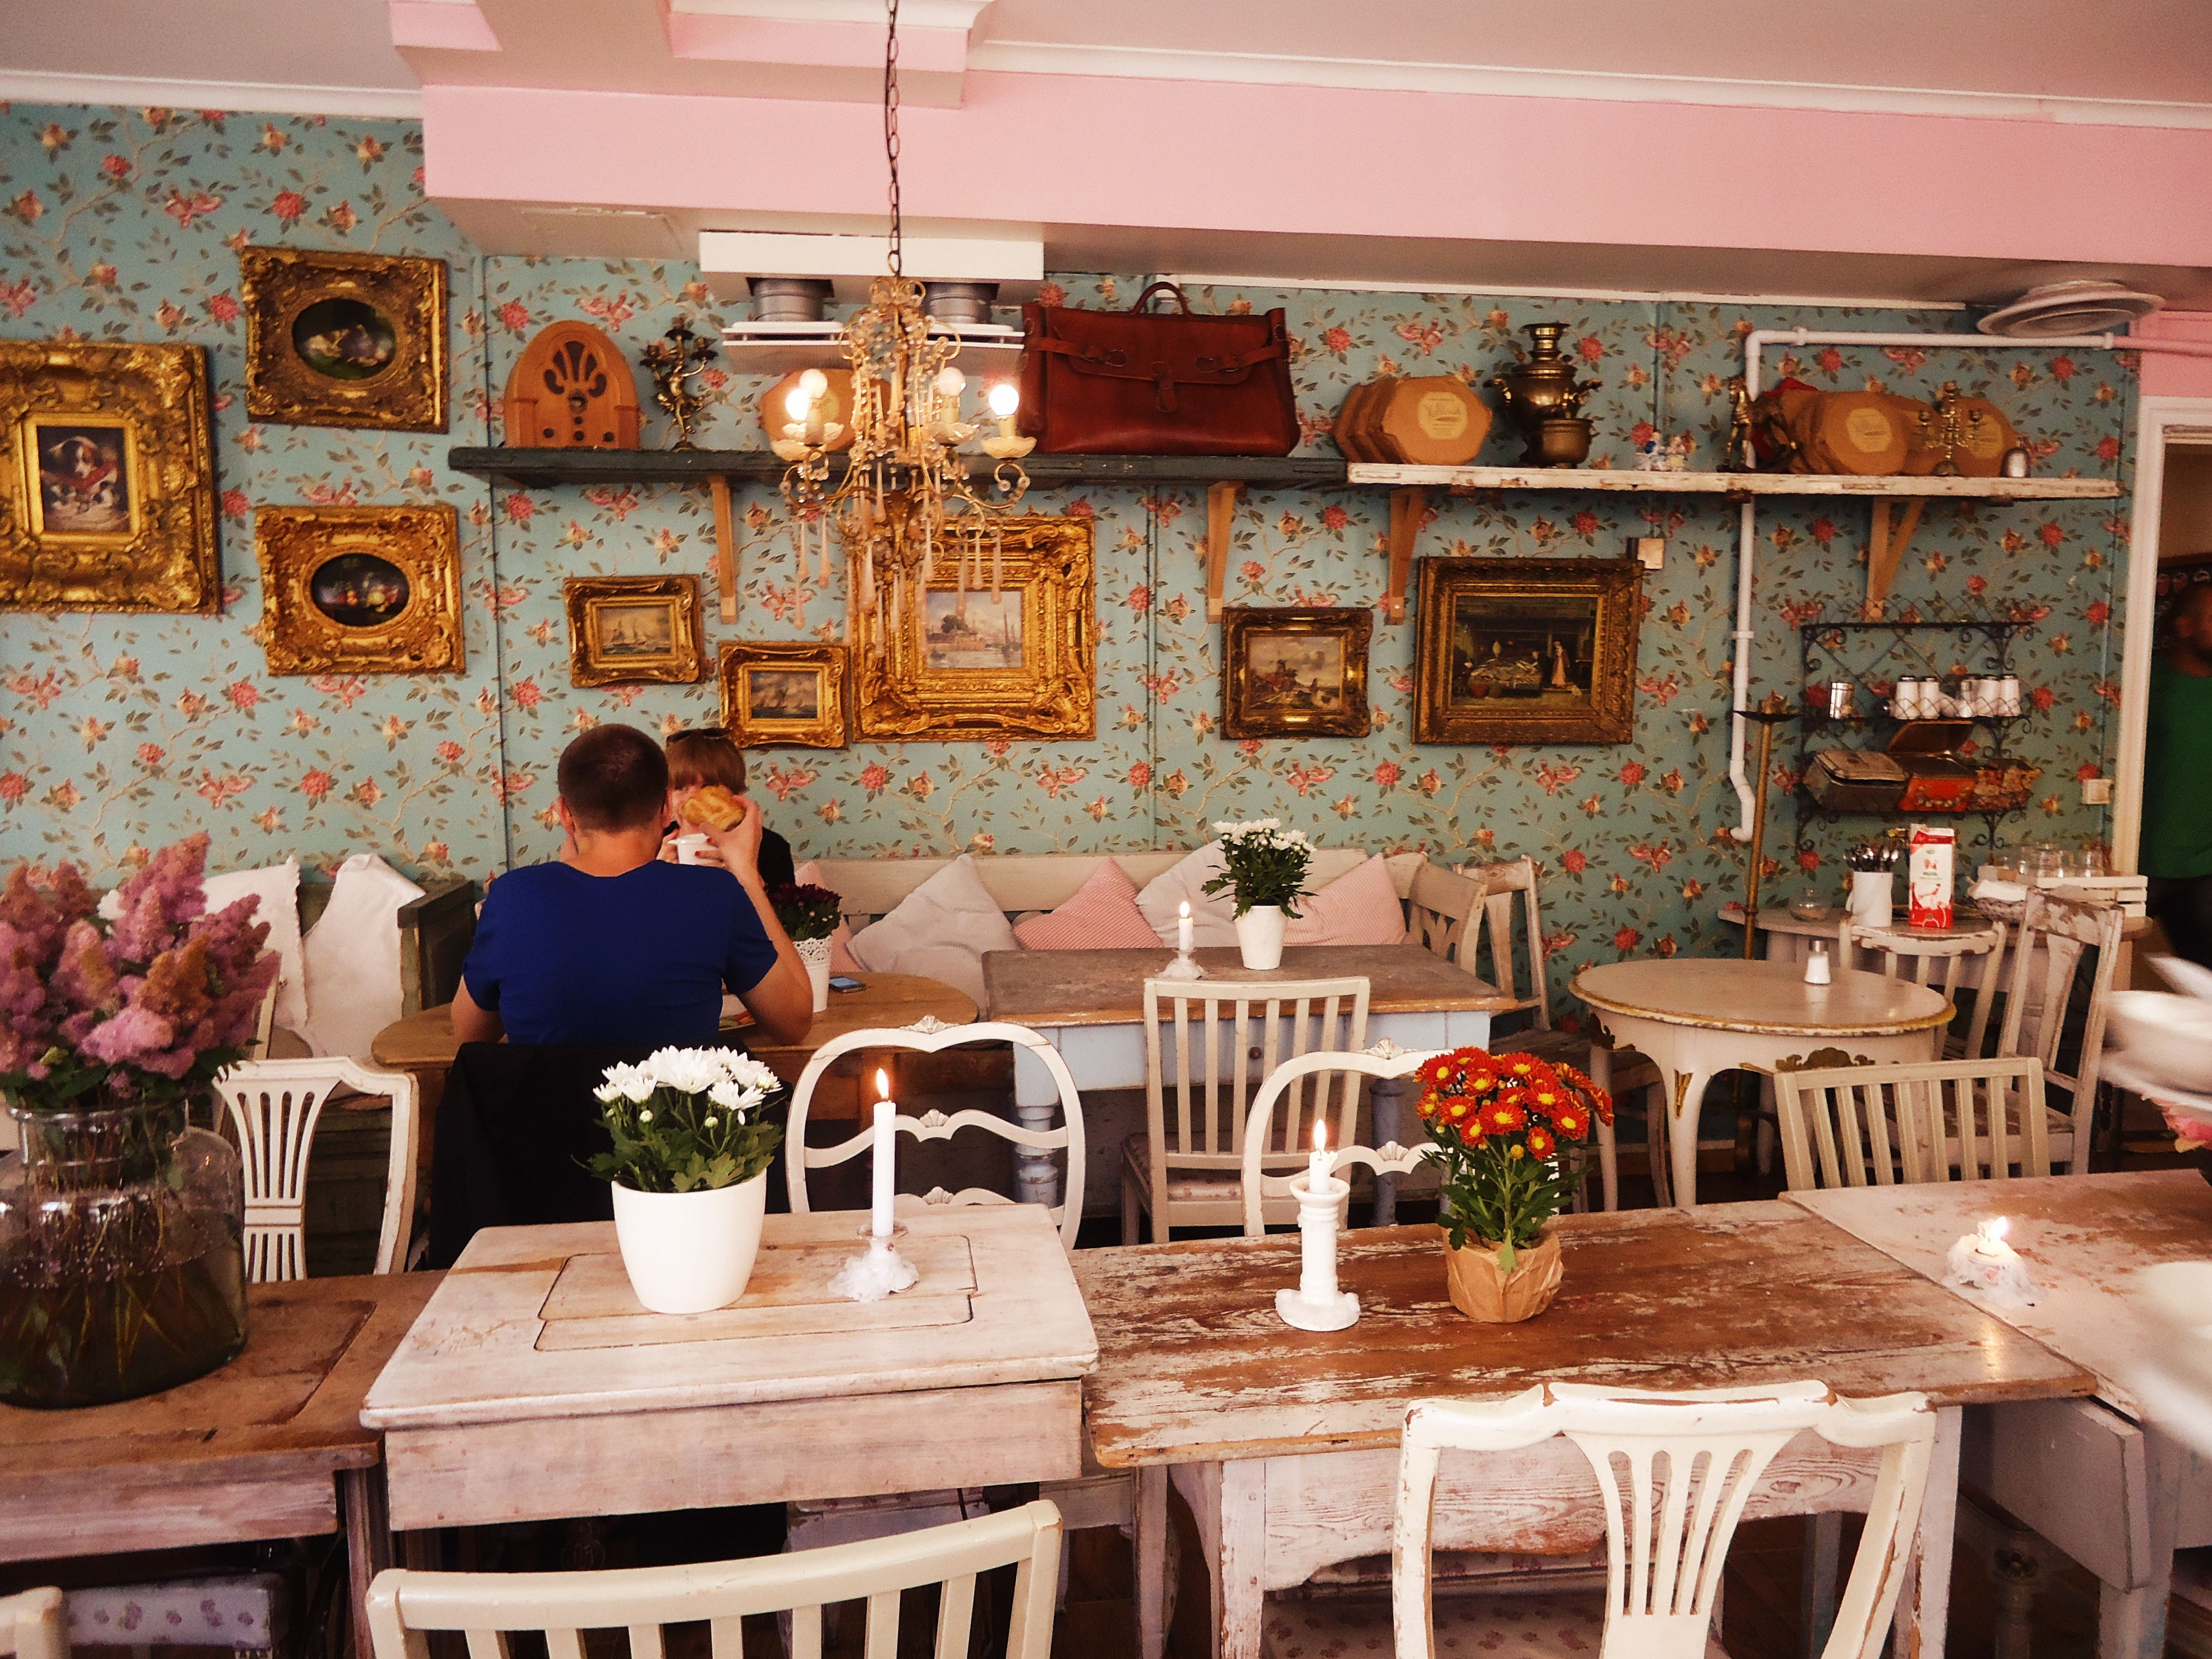 ina vintage caf繝筰 quirky kitsch interior cafe pinterest